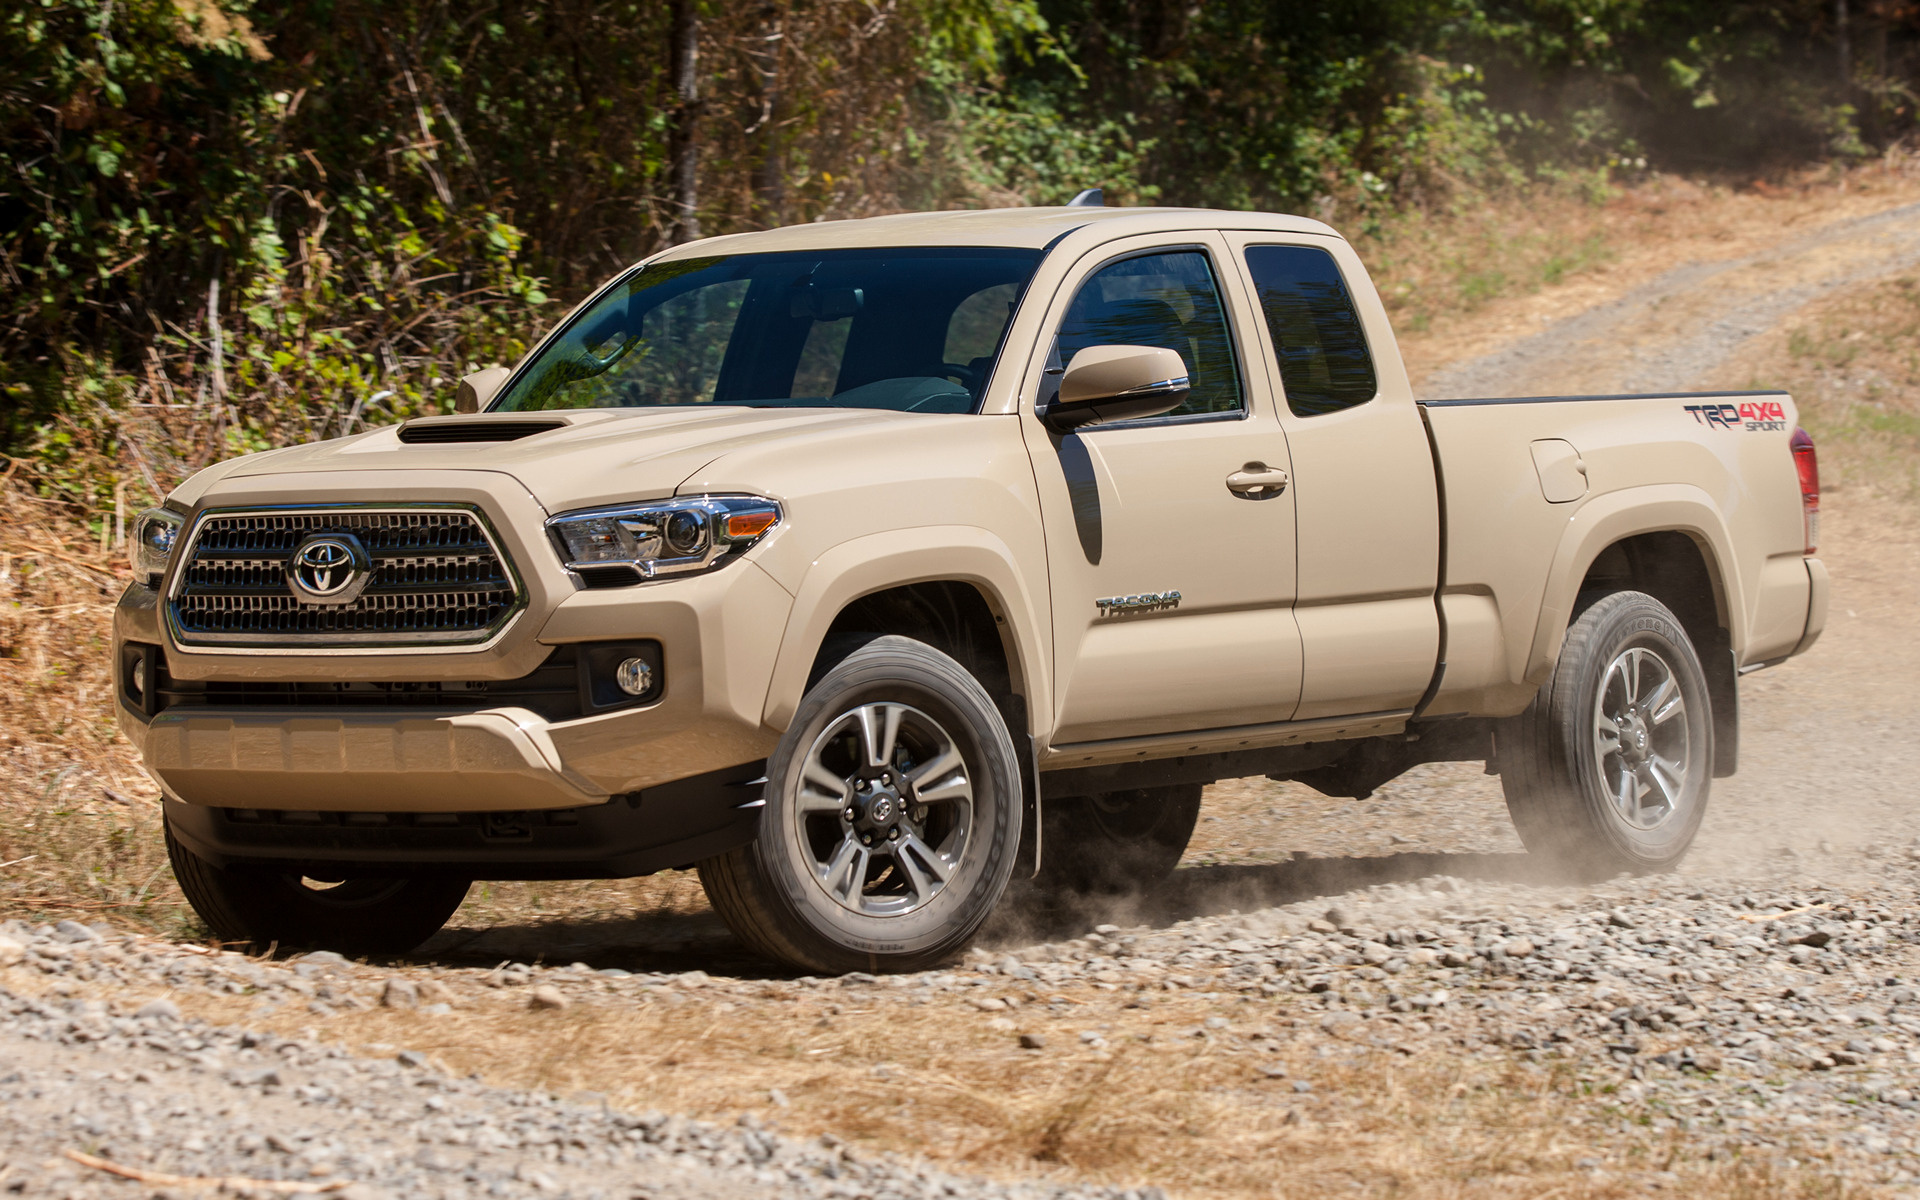 2016 Toyota Tacoma Access Cab >> 2016 Toyota Tacoma TRD Sport Access Cab - Wallpapers and HD Images | Car Pixel